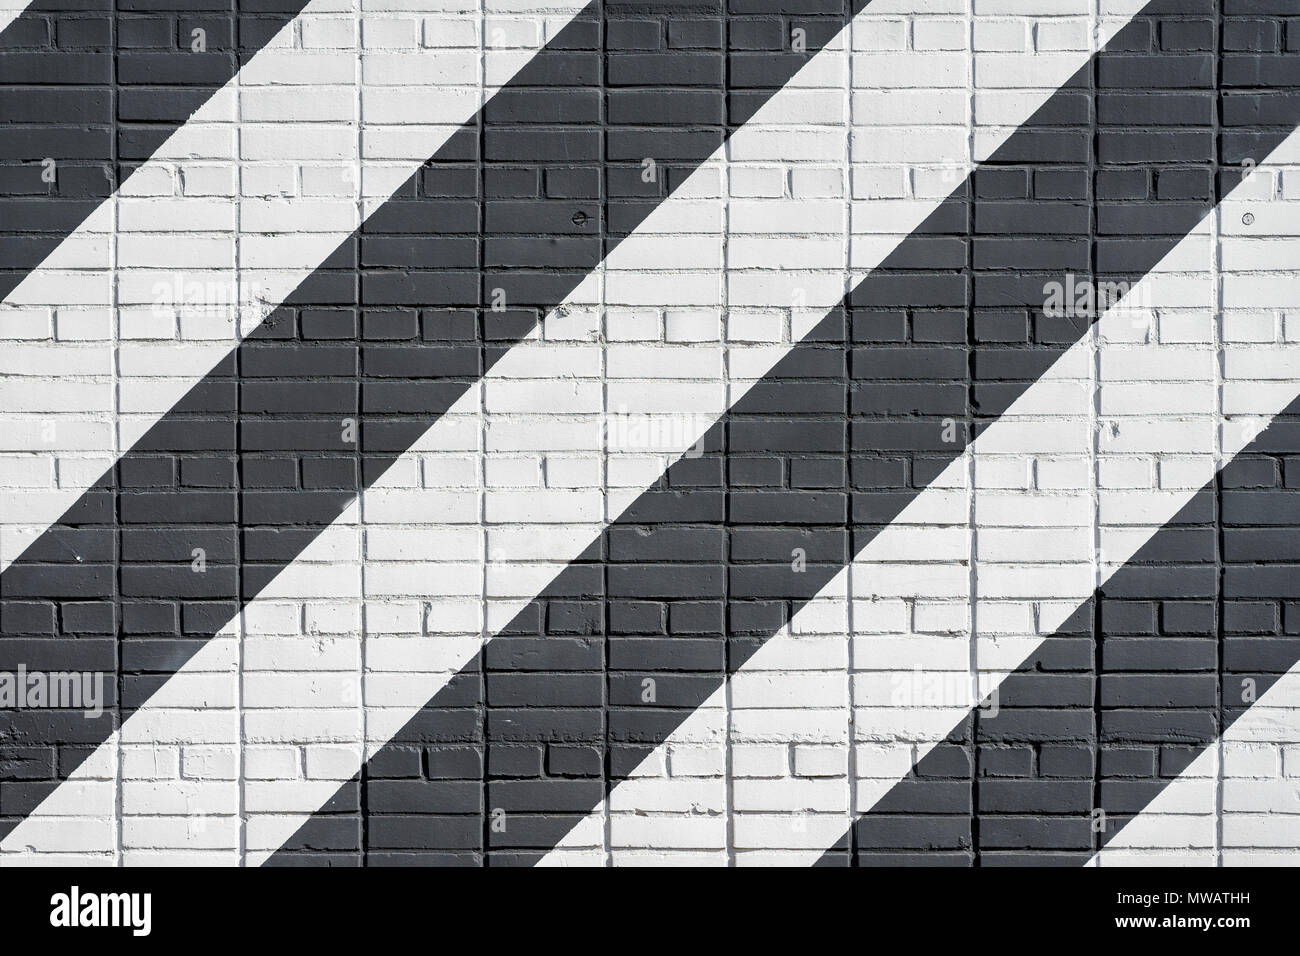 Diagonally painted bricks surface of wall in black and white color, as graffiti. Graphic grunge texture of wall. Abstract modern background - Stock Image